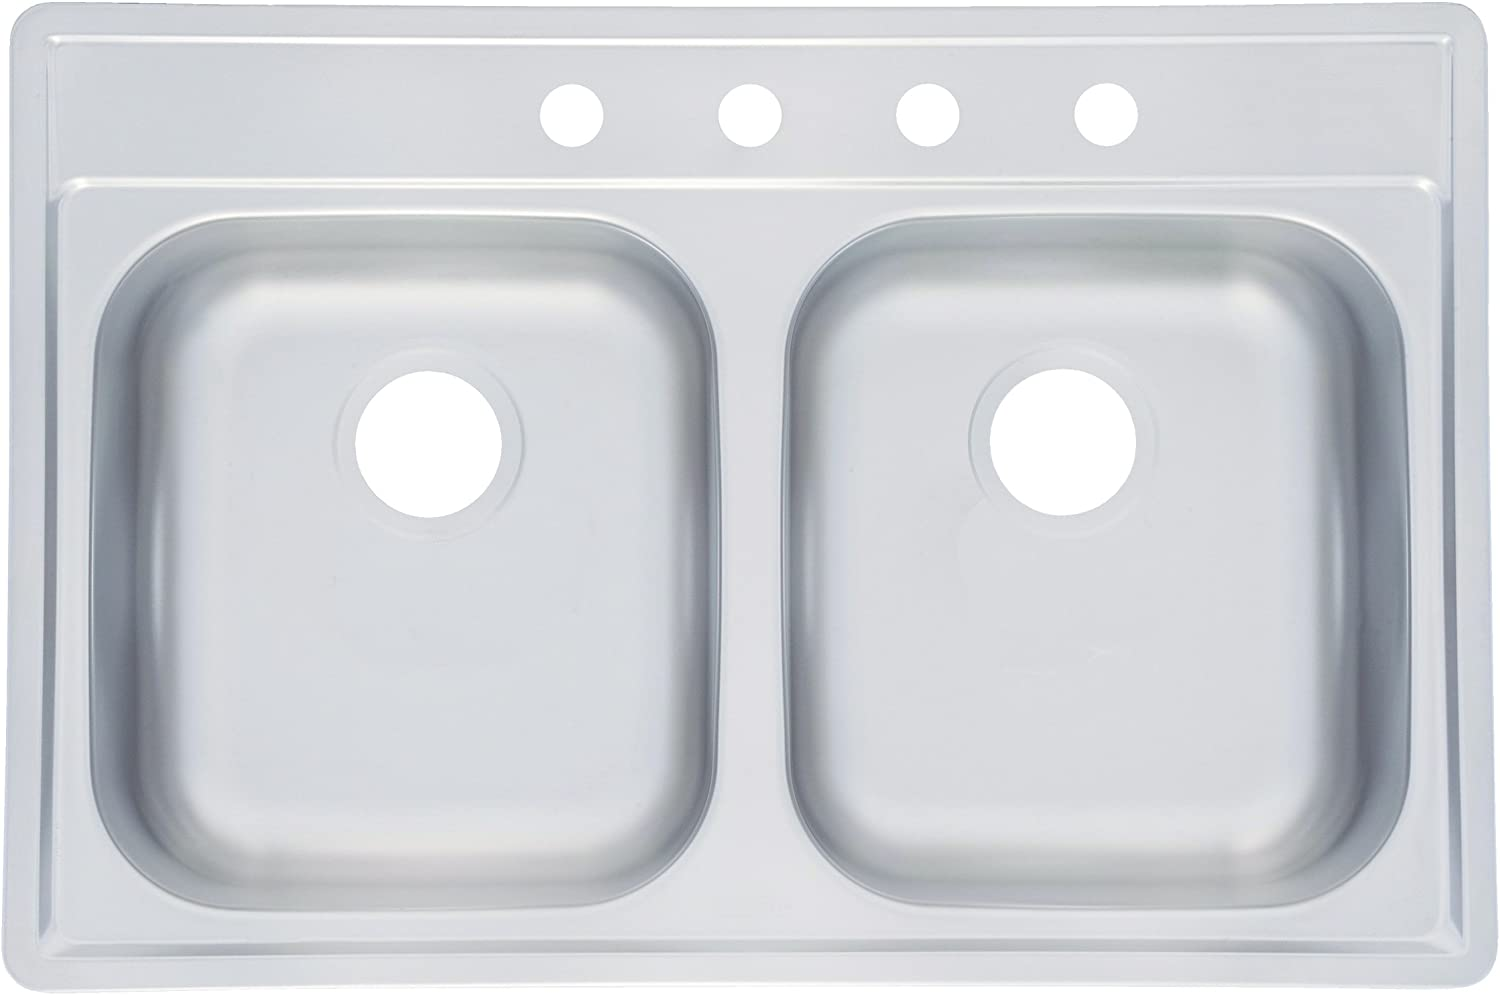 Kindred FDS804NB Large Double Bowl Stainless Steel 33x22in. Topmount Sink